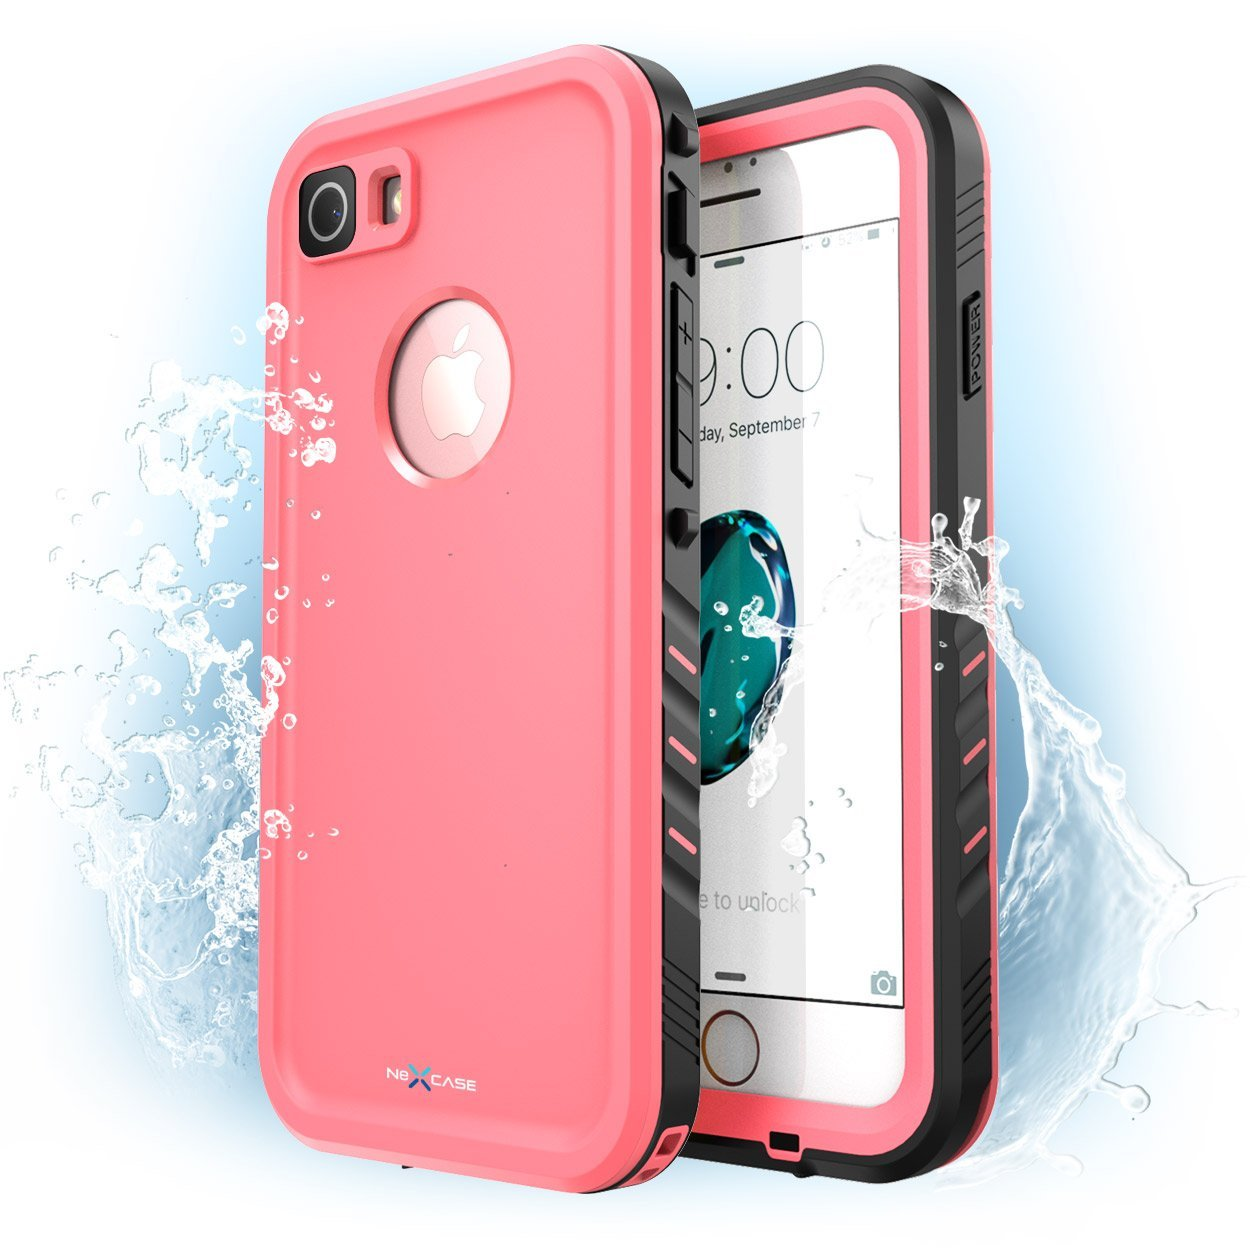 Iphone 7 Case, iPhone 8 Case, NexCase Waterproof Full-body Rugged Case with Built-in Screen Protector